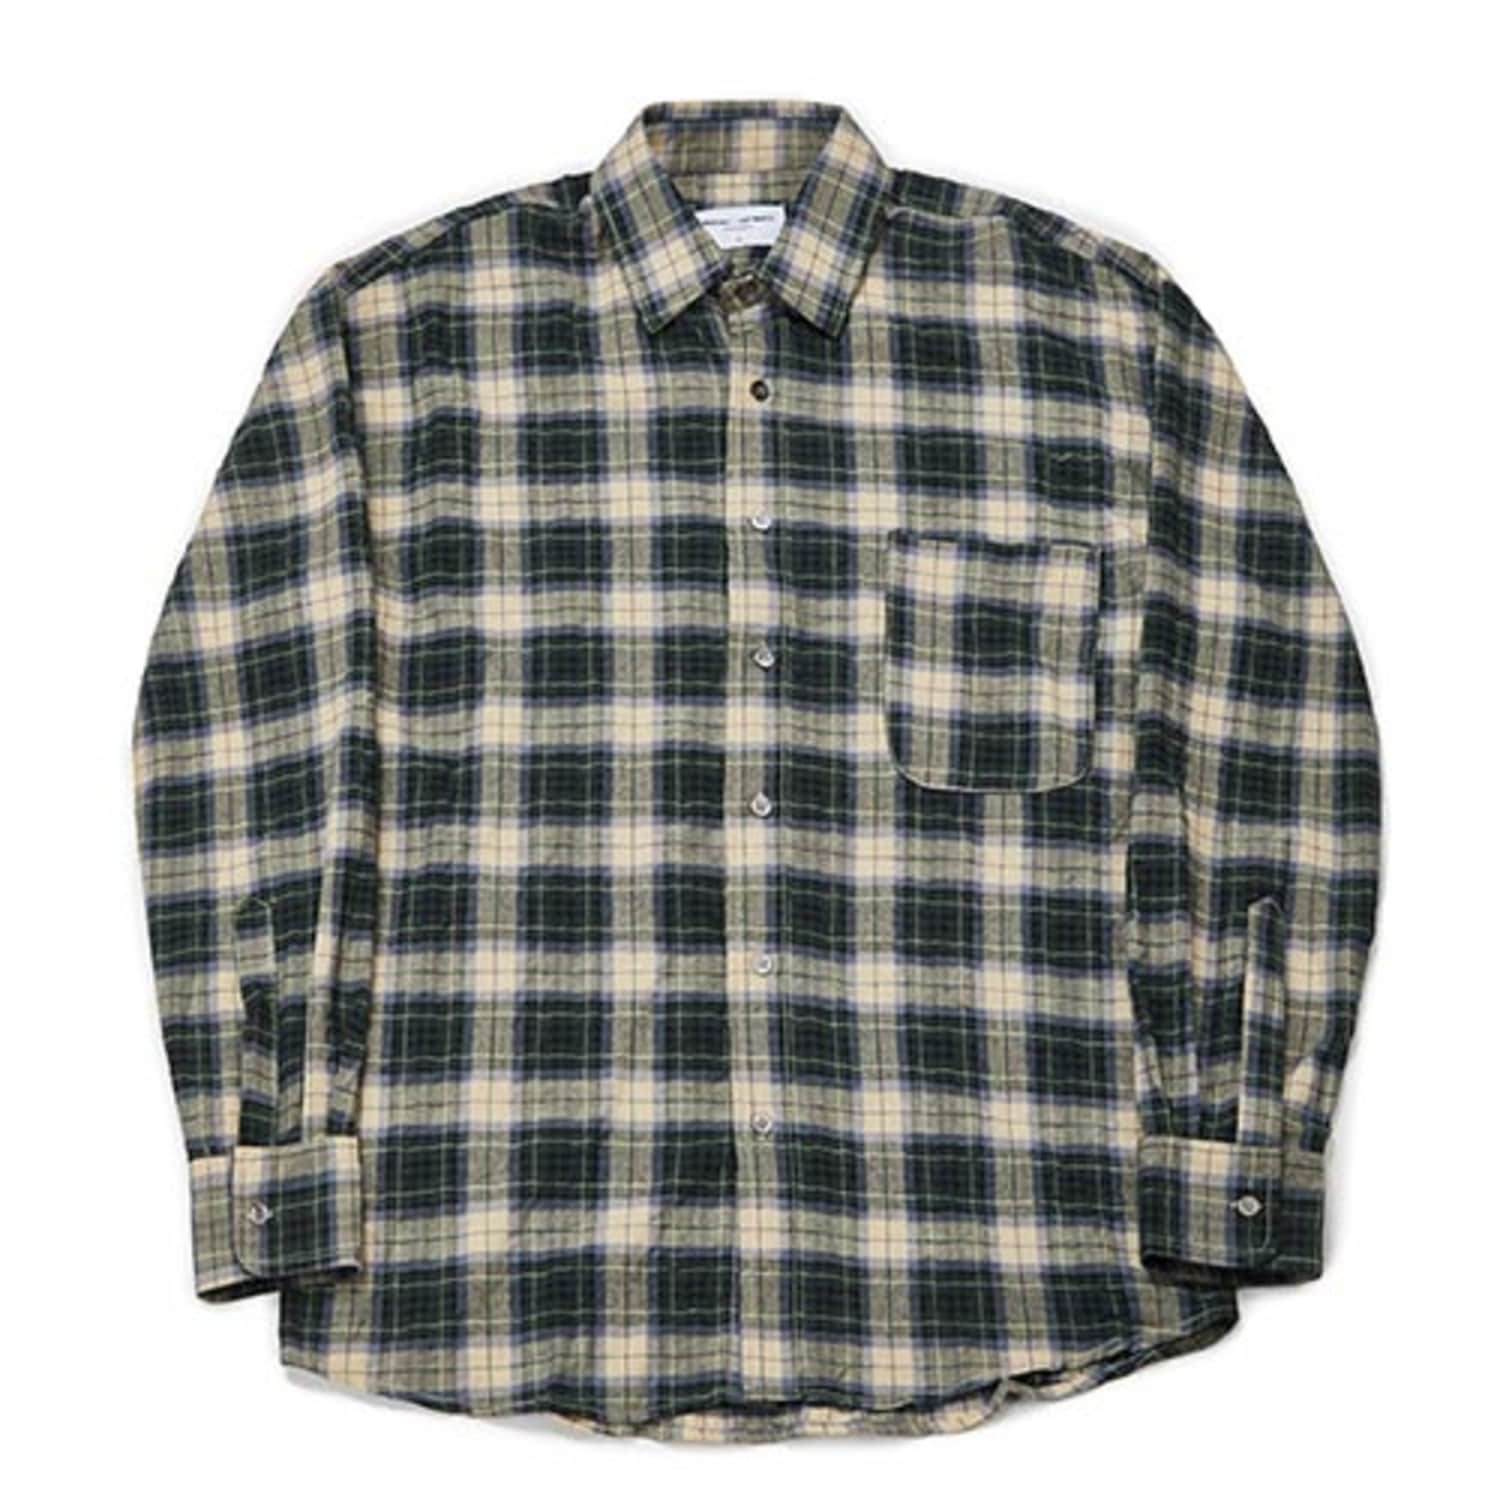 [PARTIMENTO x 86]Semiover Herringbone Check Shirts (Green)(20%SALE)